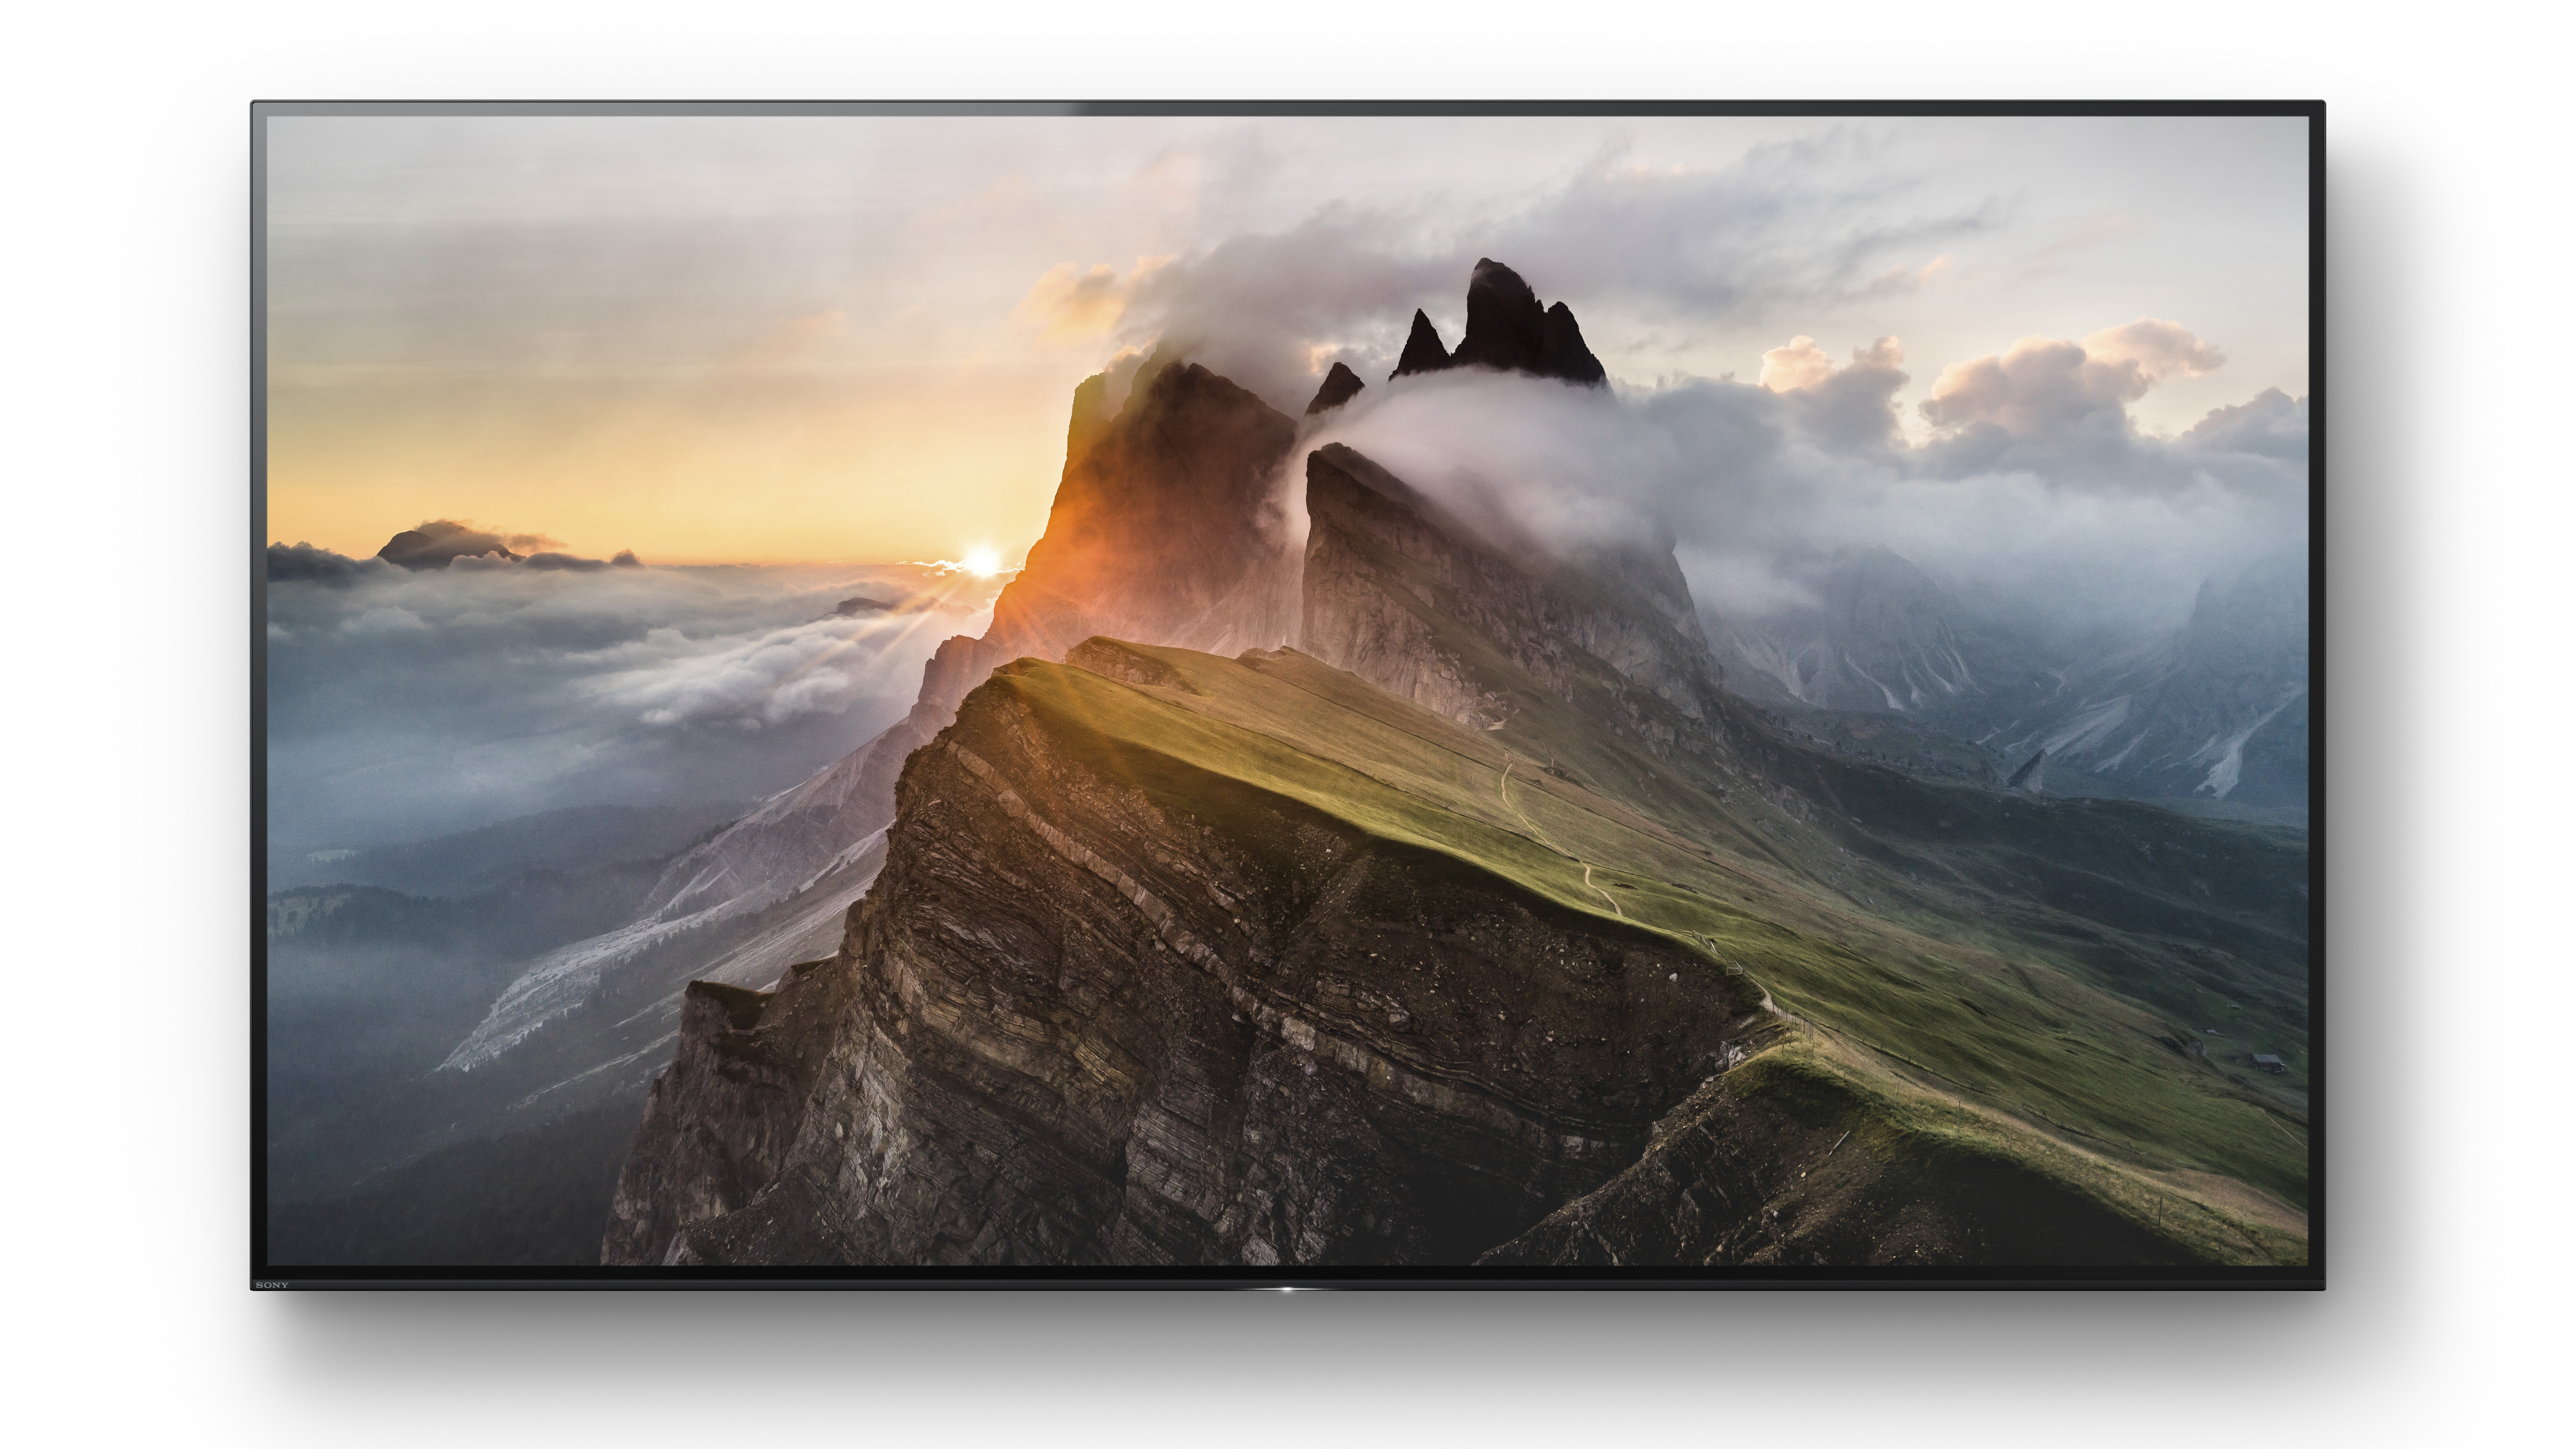 Best 65 Inch 4k Tvs 2019 The Best Big Screen Tvs For Any Budget